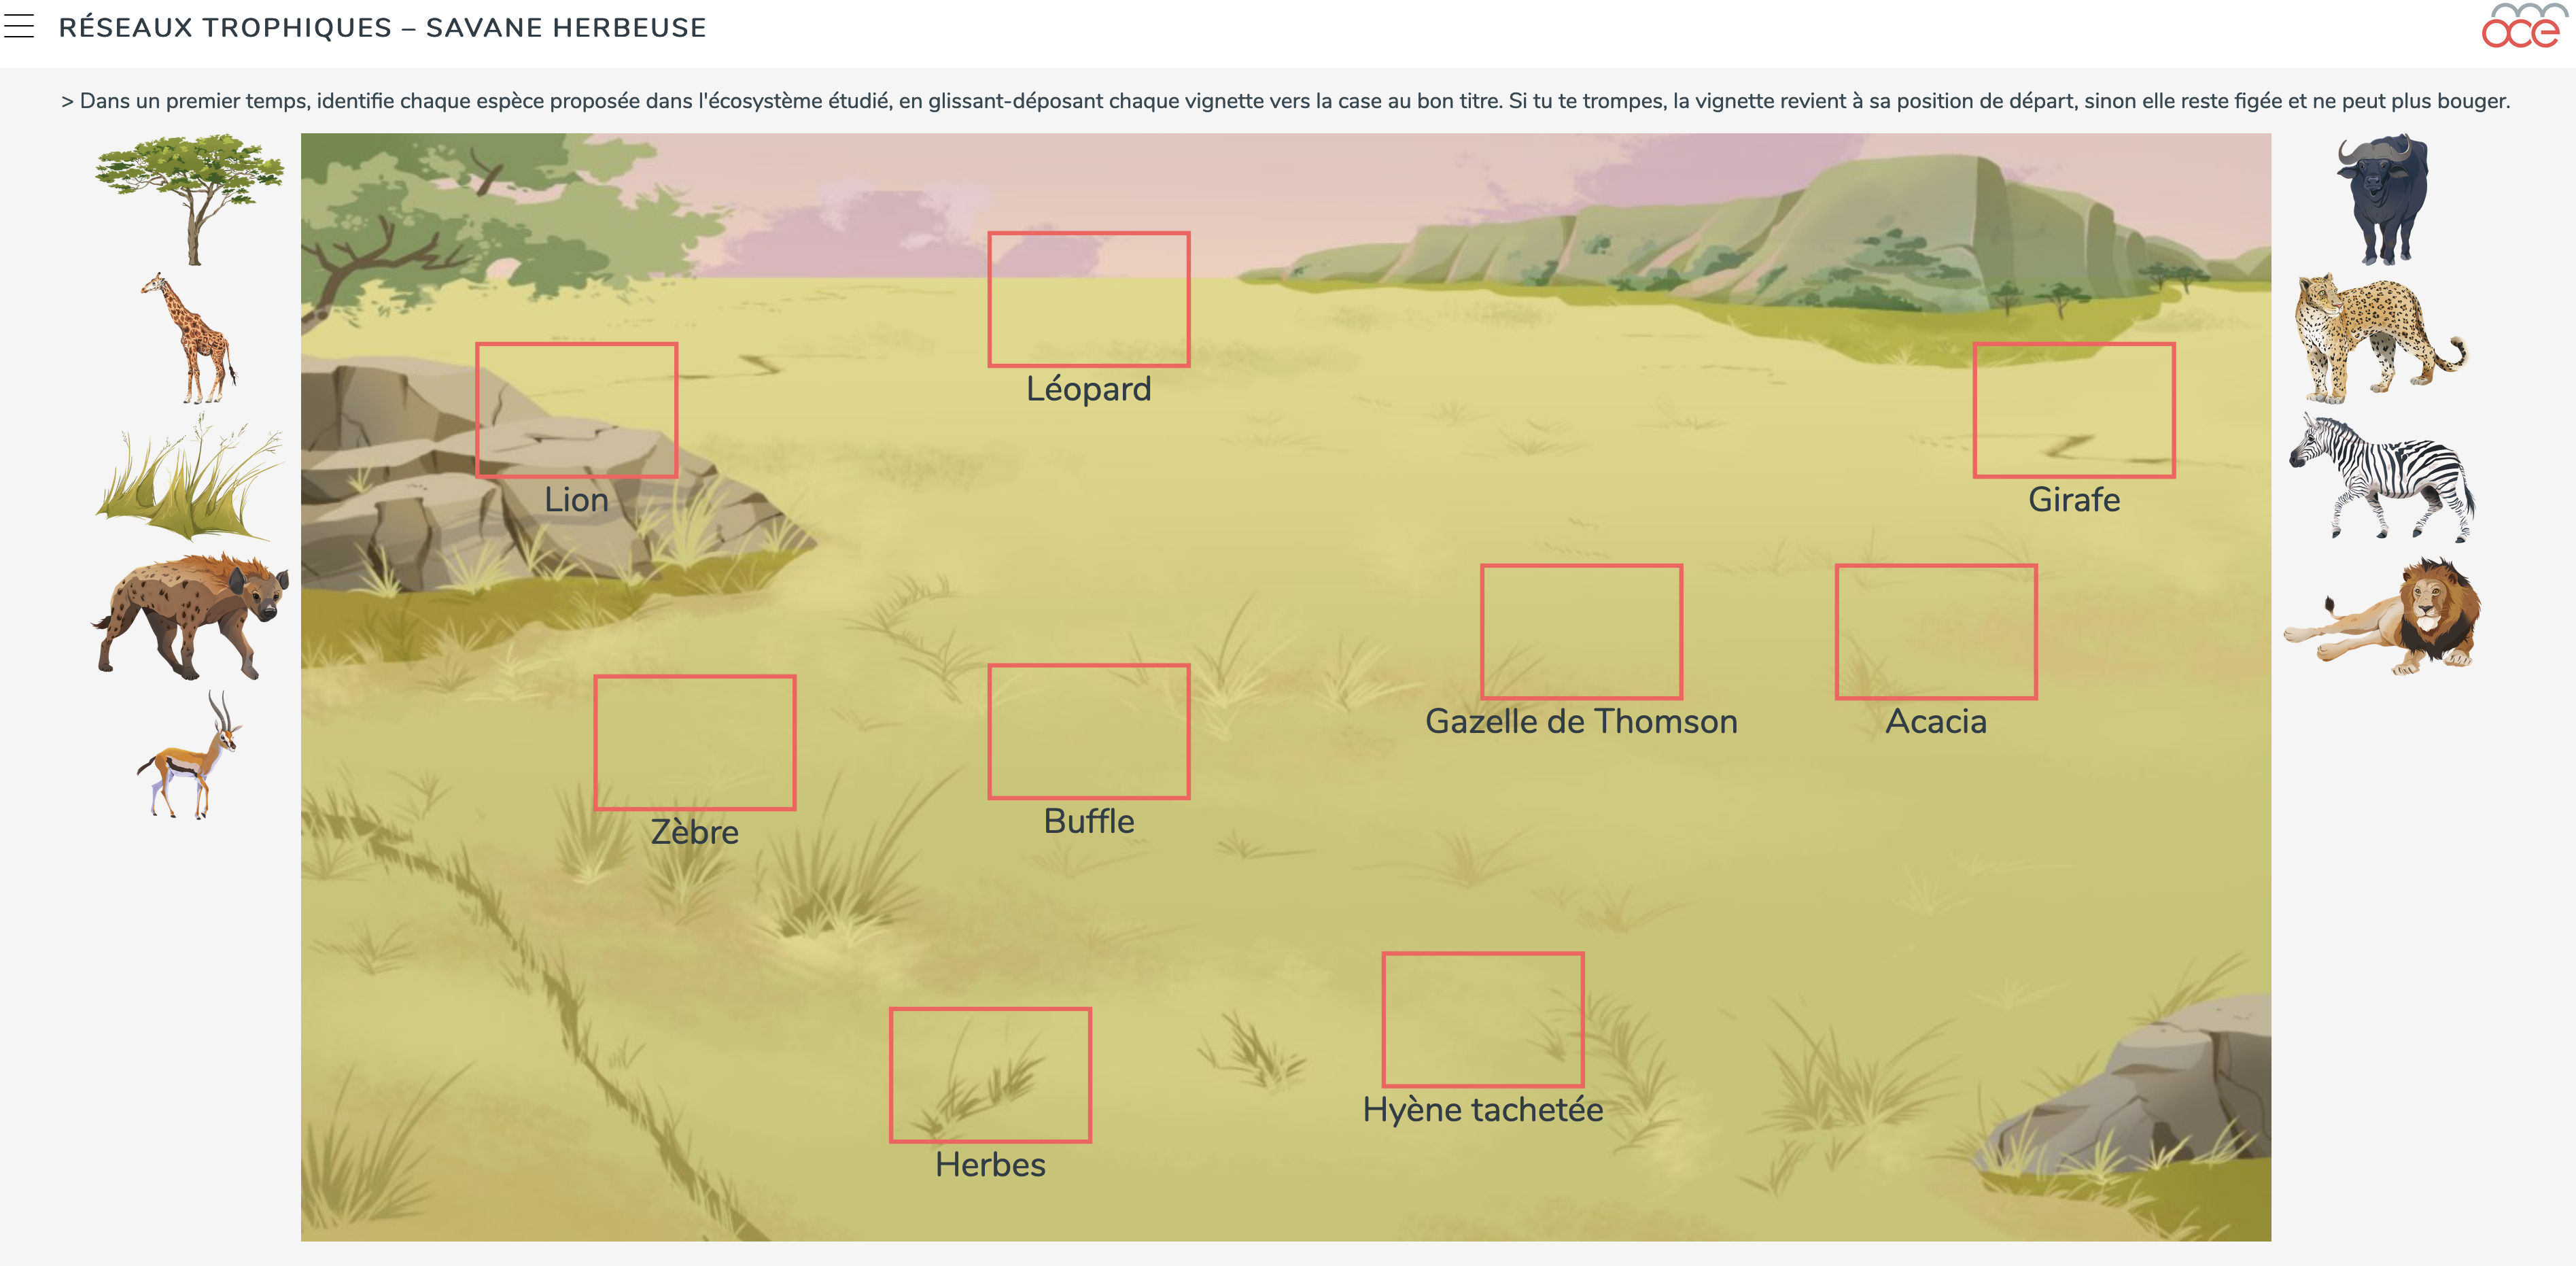 savane food web image